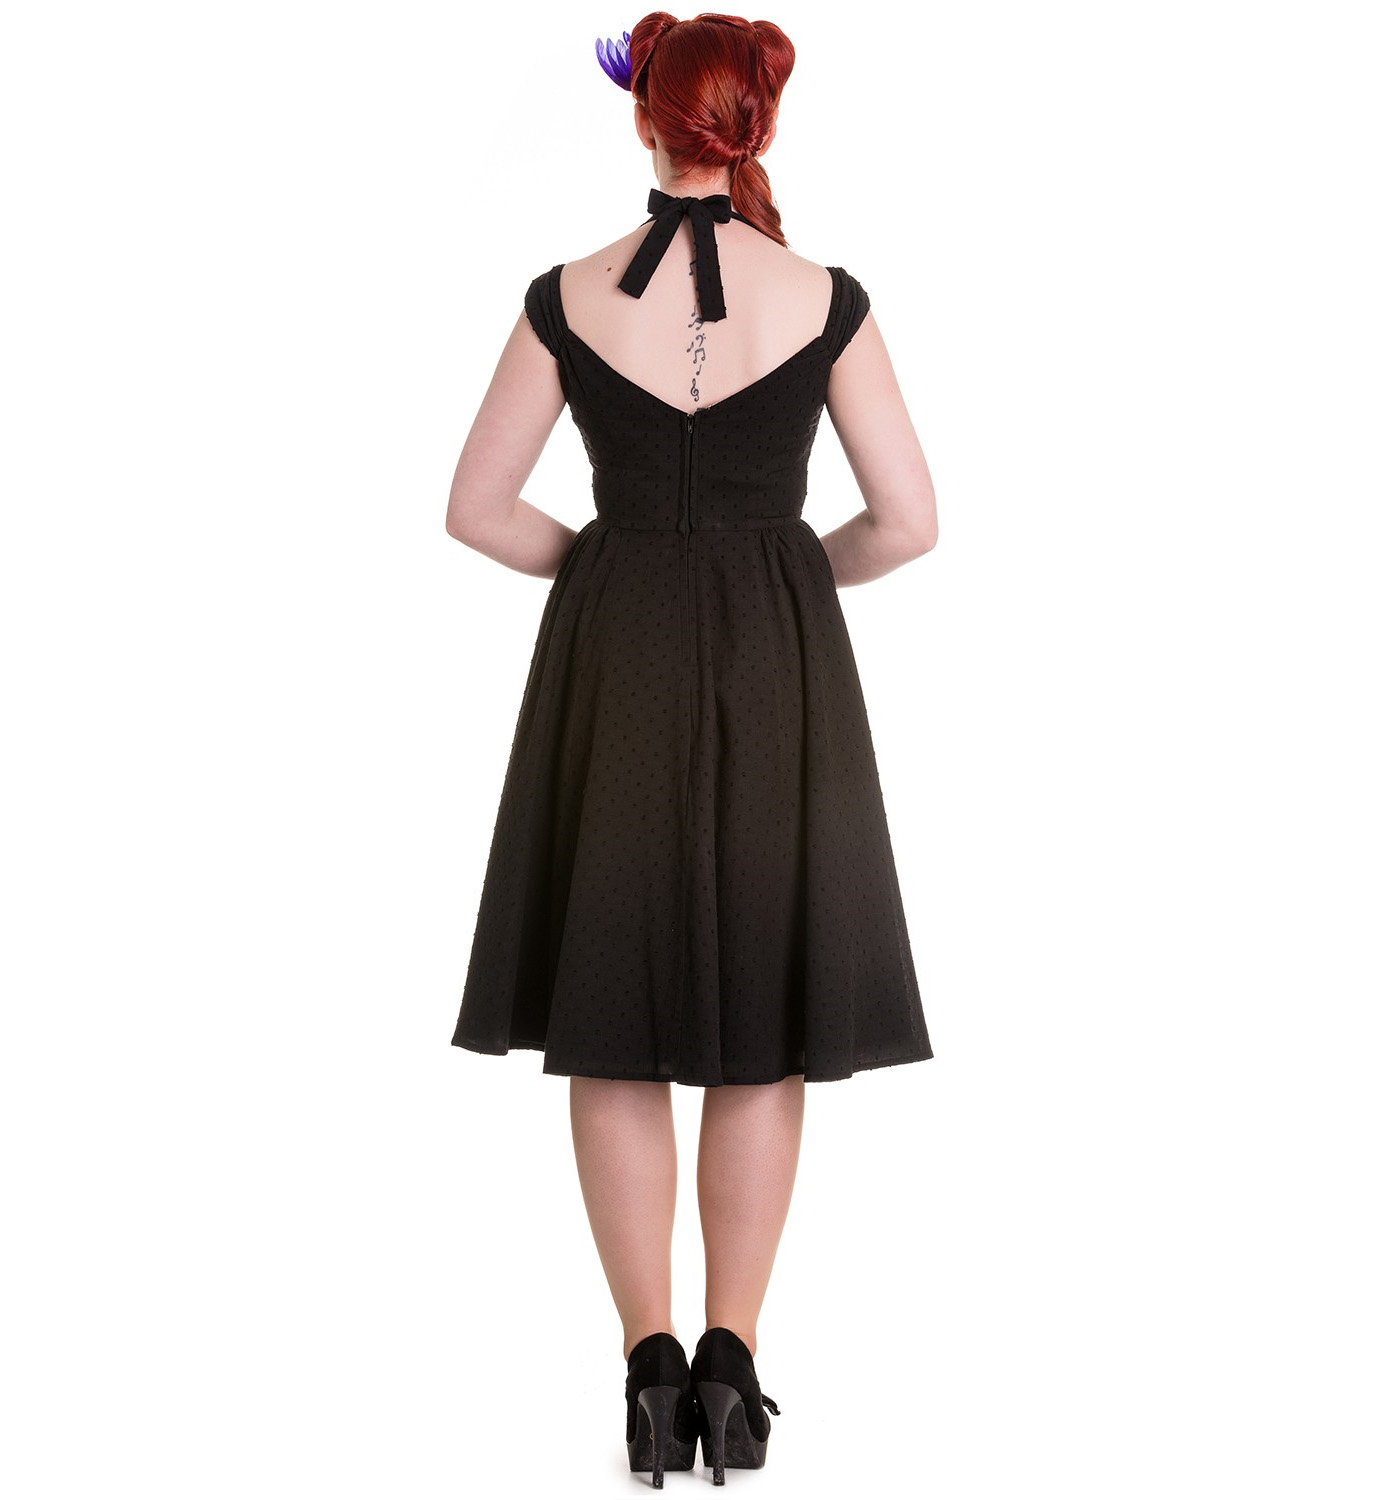 Hell-Bunny-Pin-Up-Summer-50s-Dress-Vintage-Rockabilly-EVELINE-Black-All-Sizes thumbnail 11